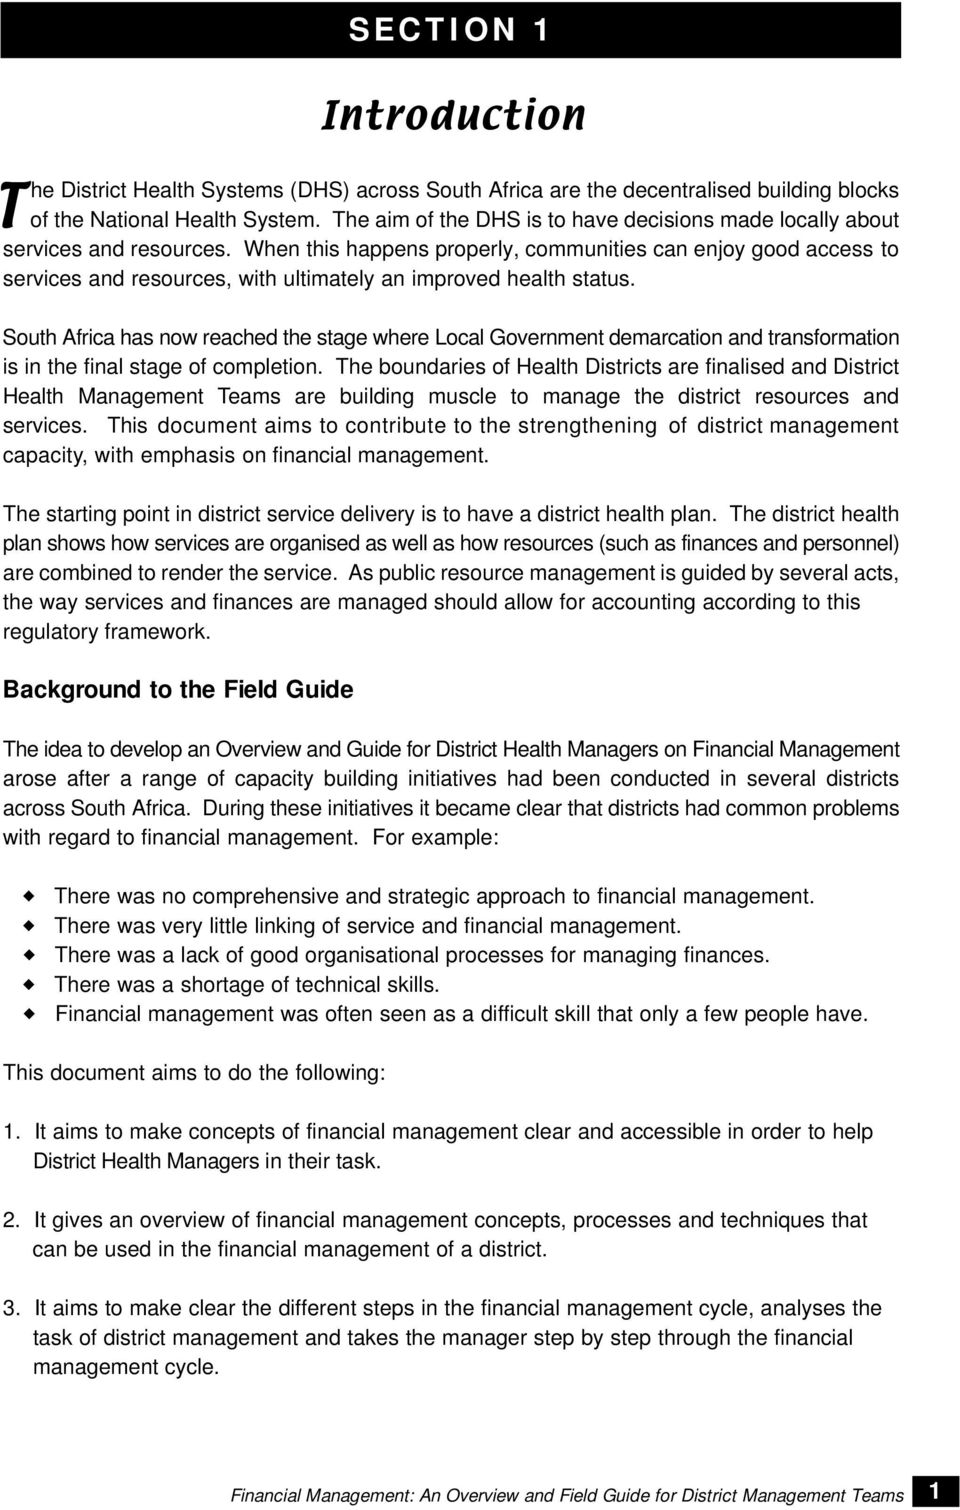 dhs financial management guide rh signaturepedagogies org uk Financial Management System Clip Art Financial Management